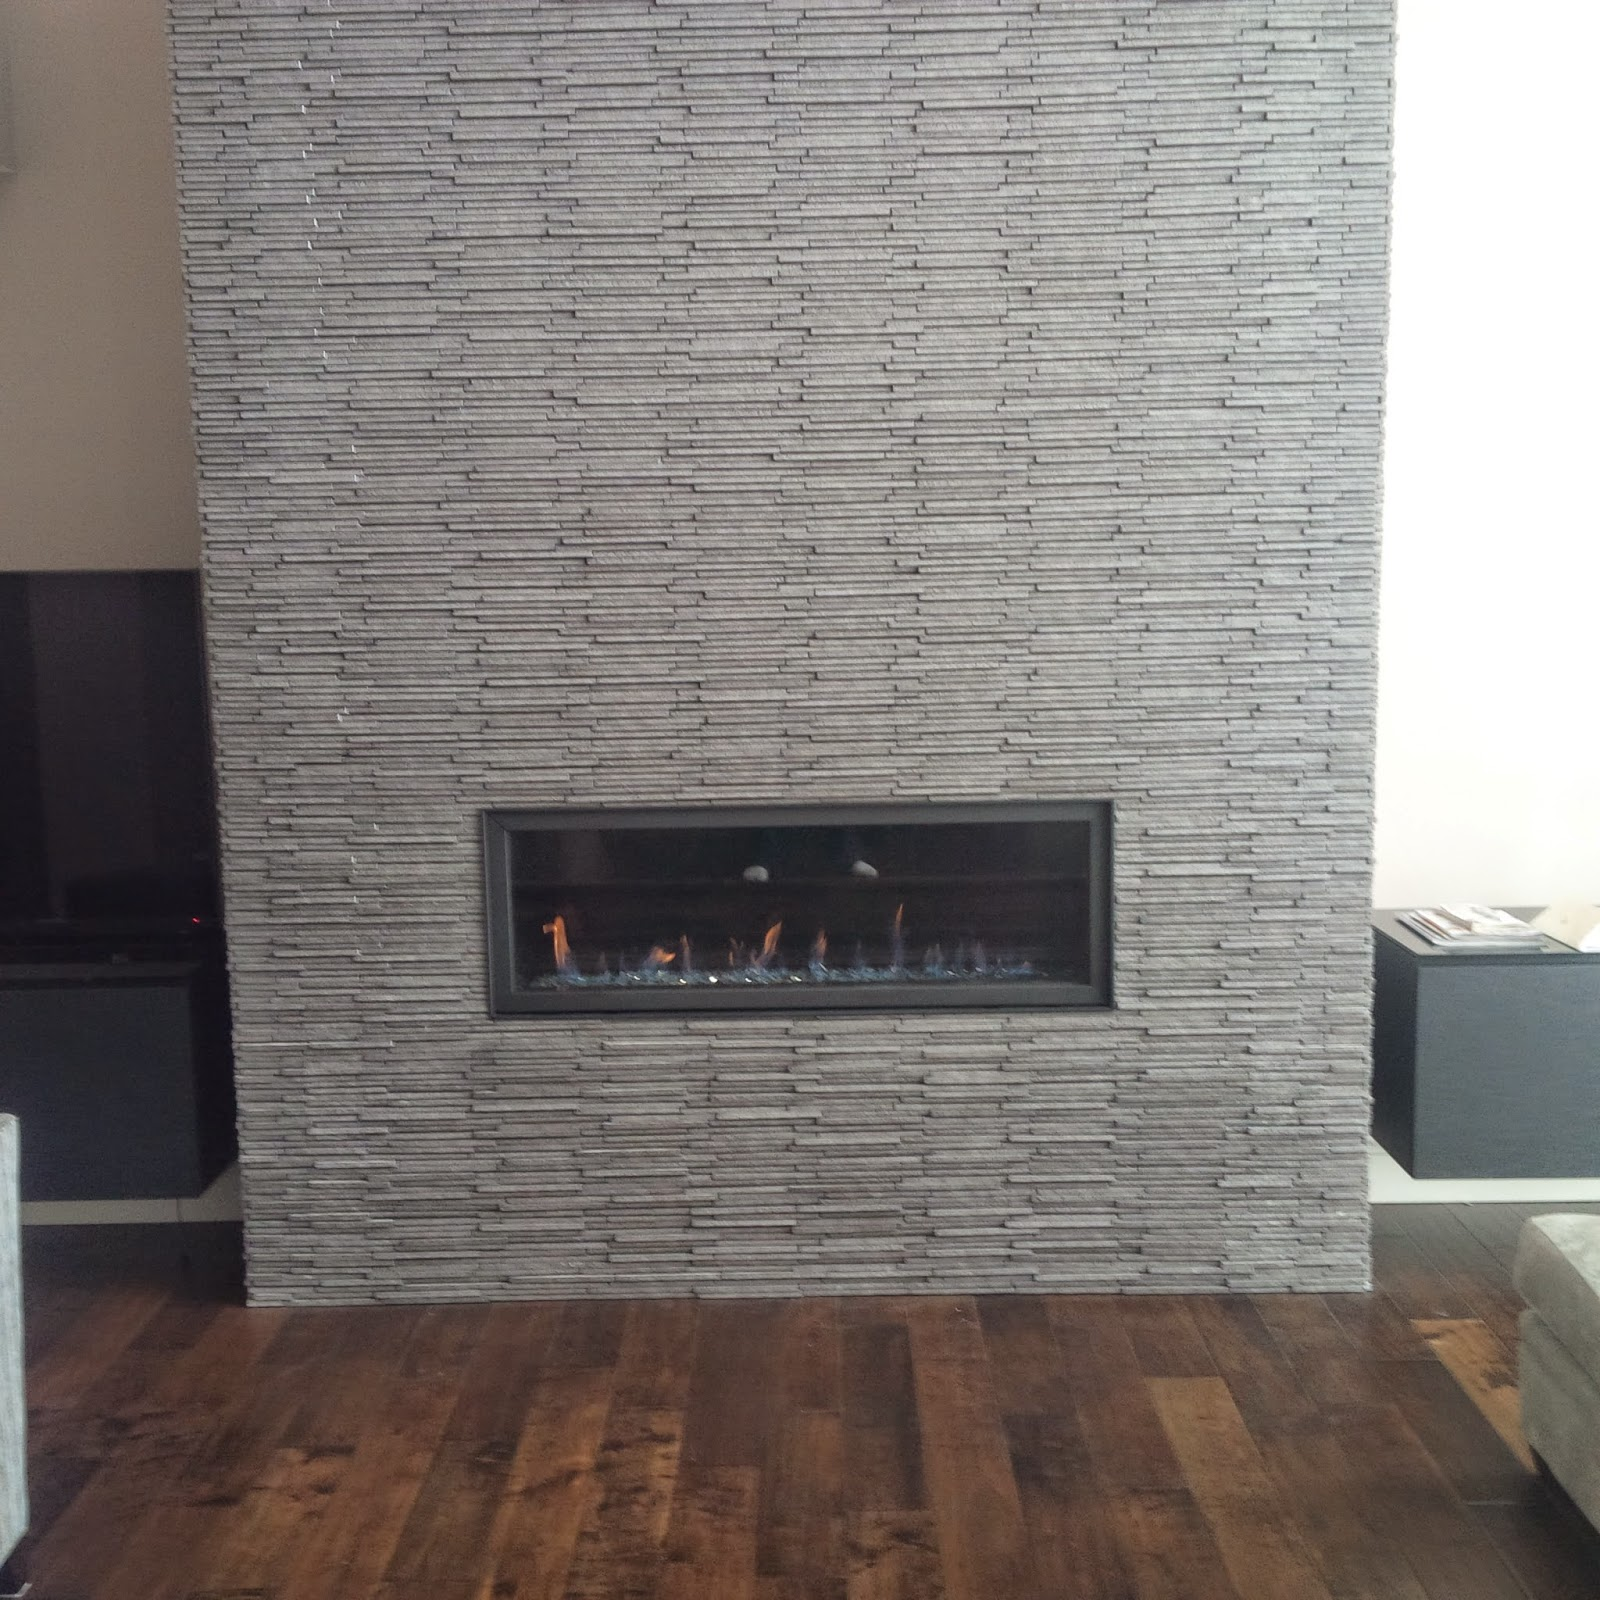 Ask Rob: Fireplace trends in 2014 for custom homes